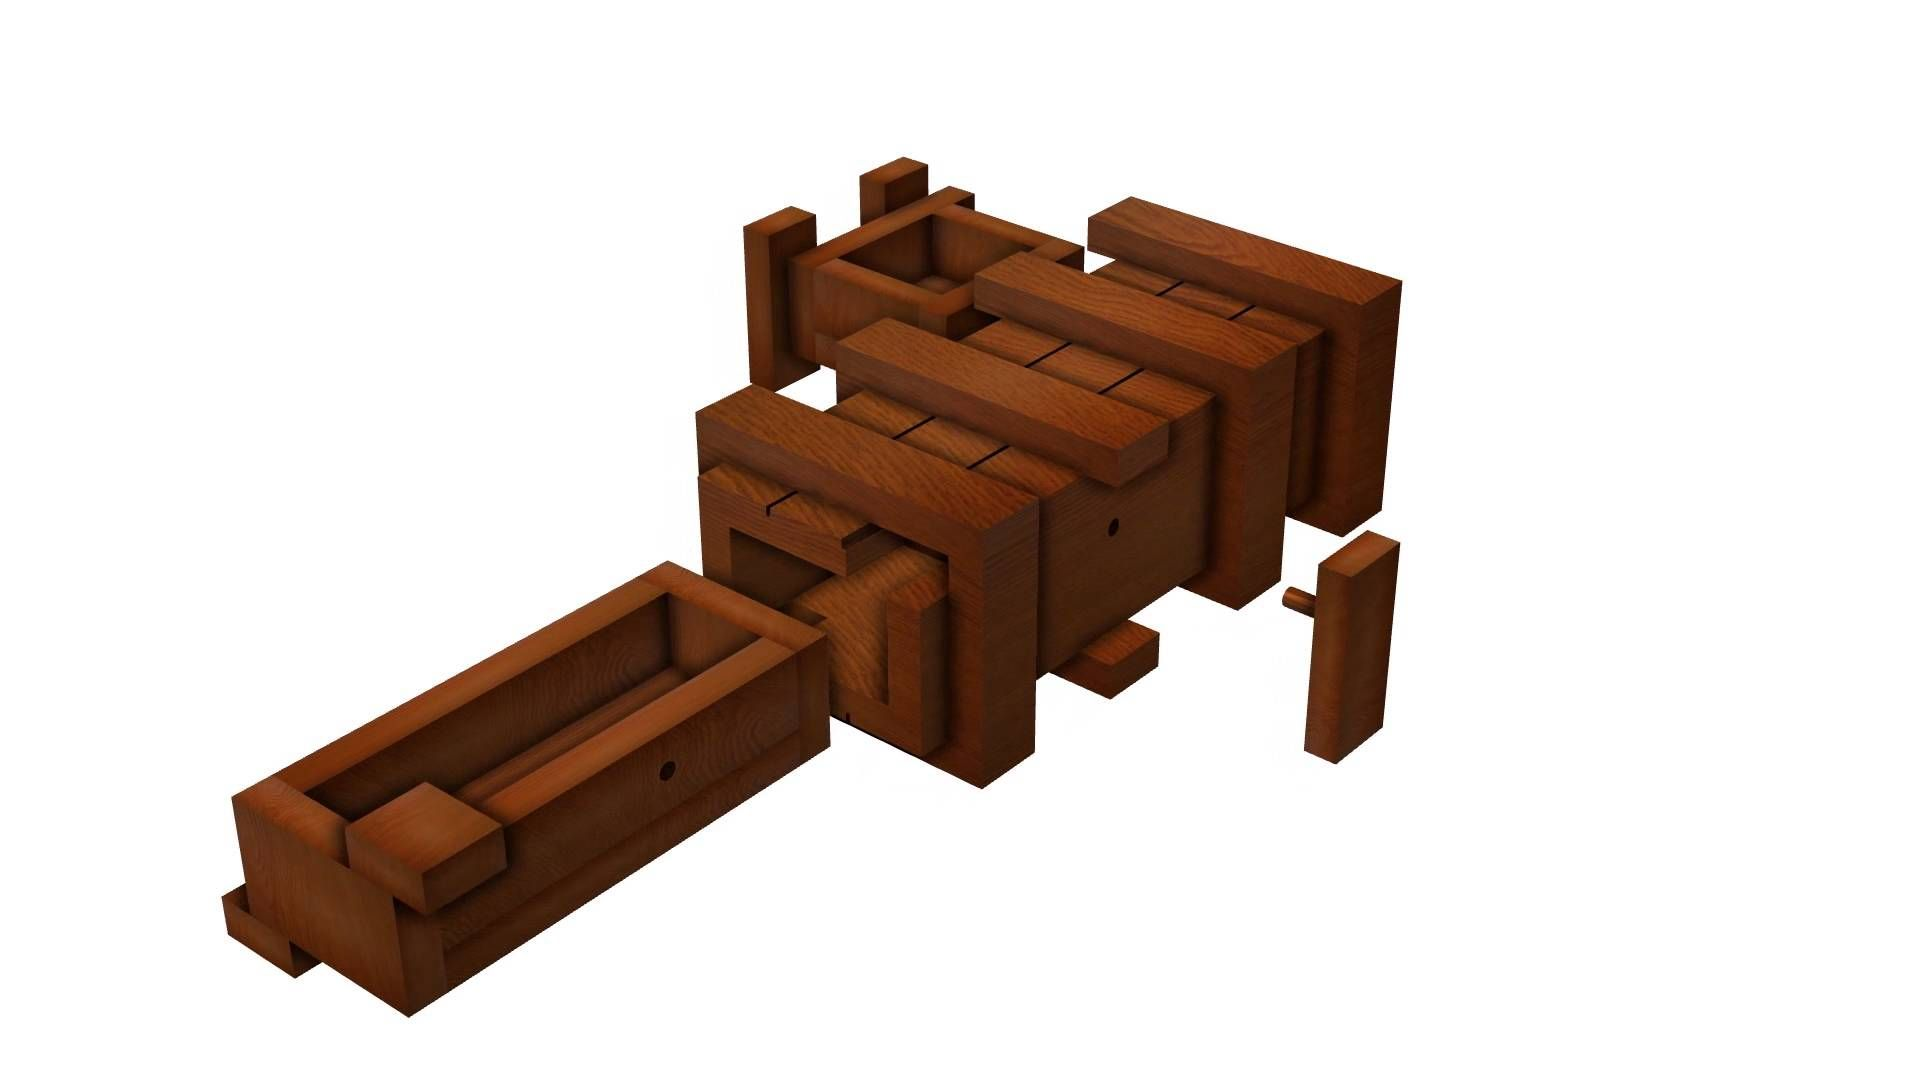 wooden puzzles plans - google search | wood stuff | puzzle